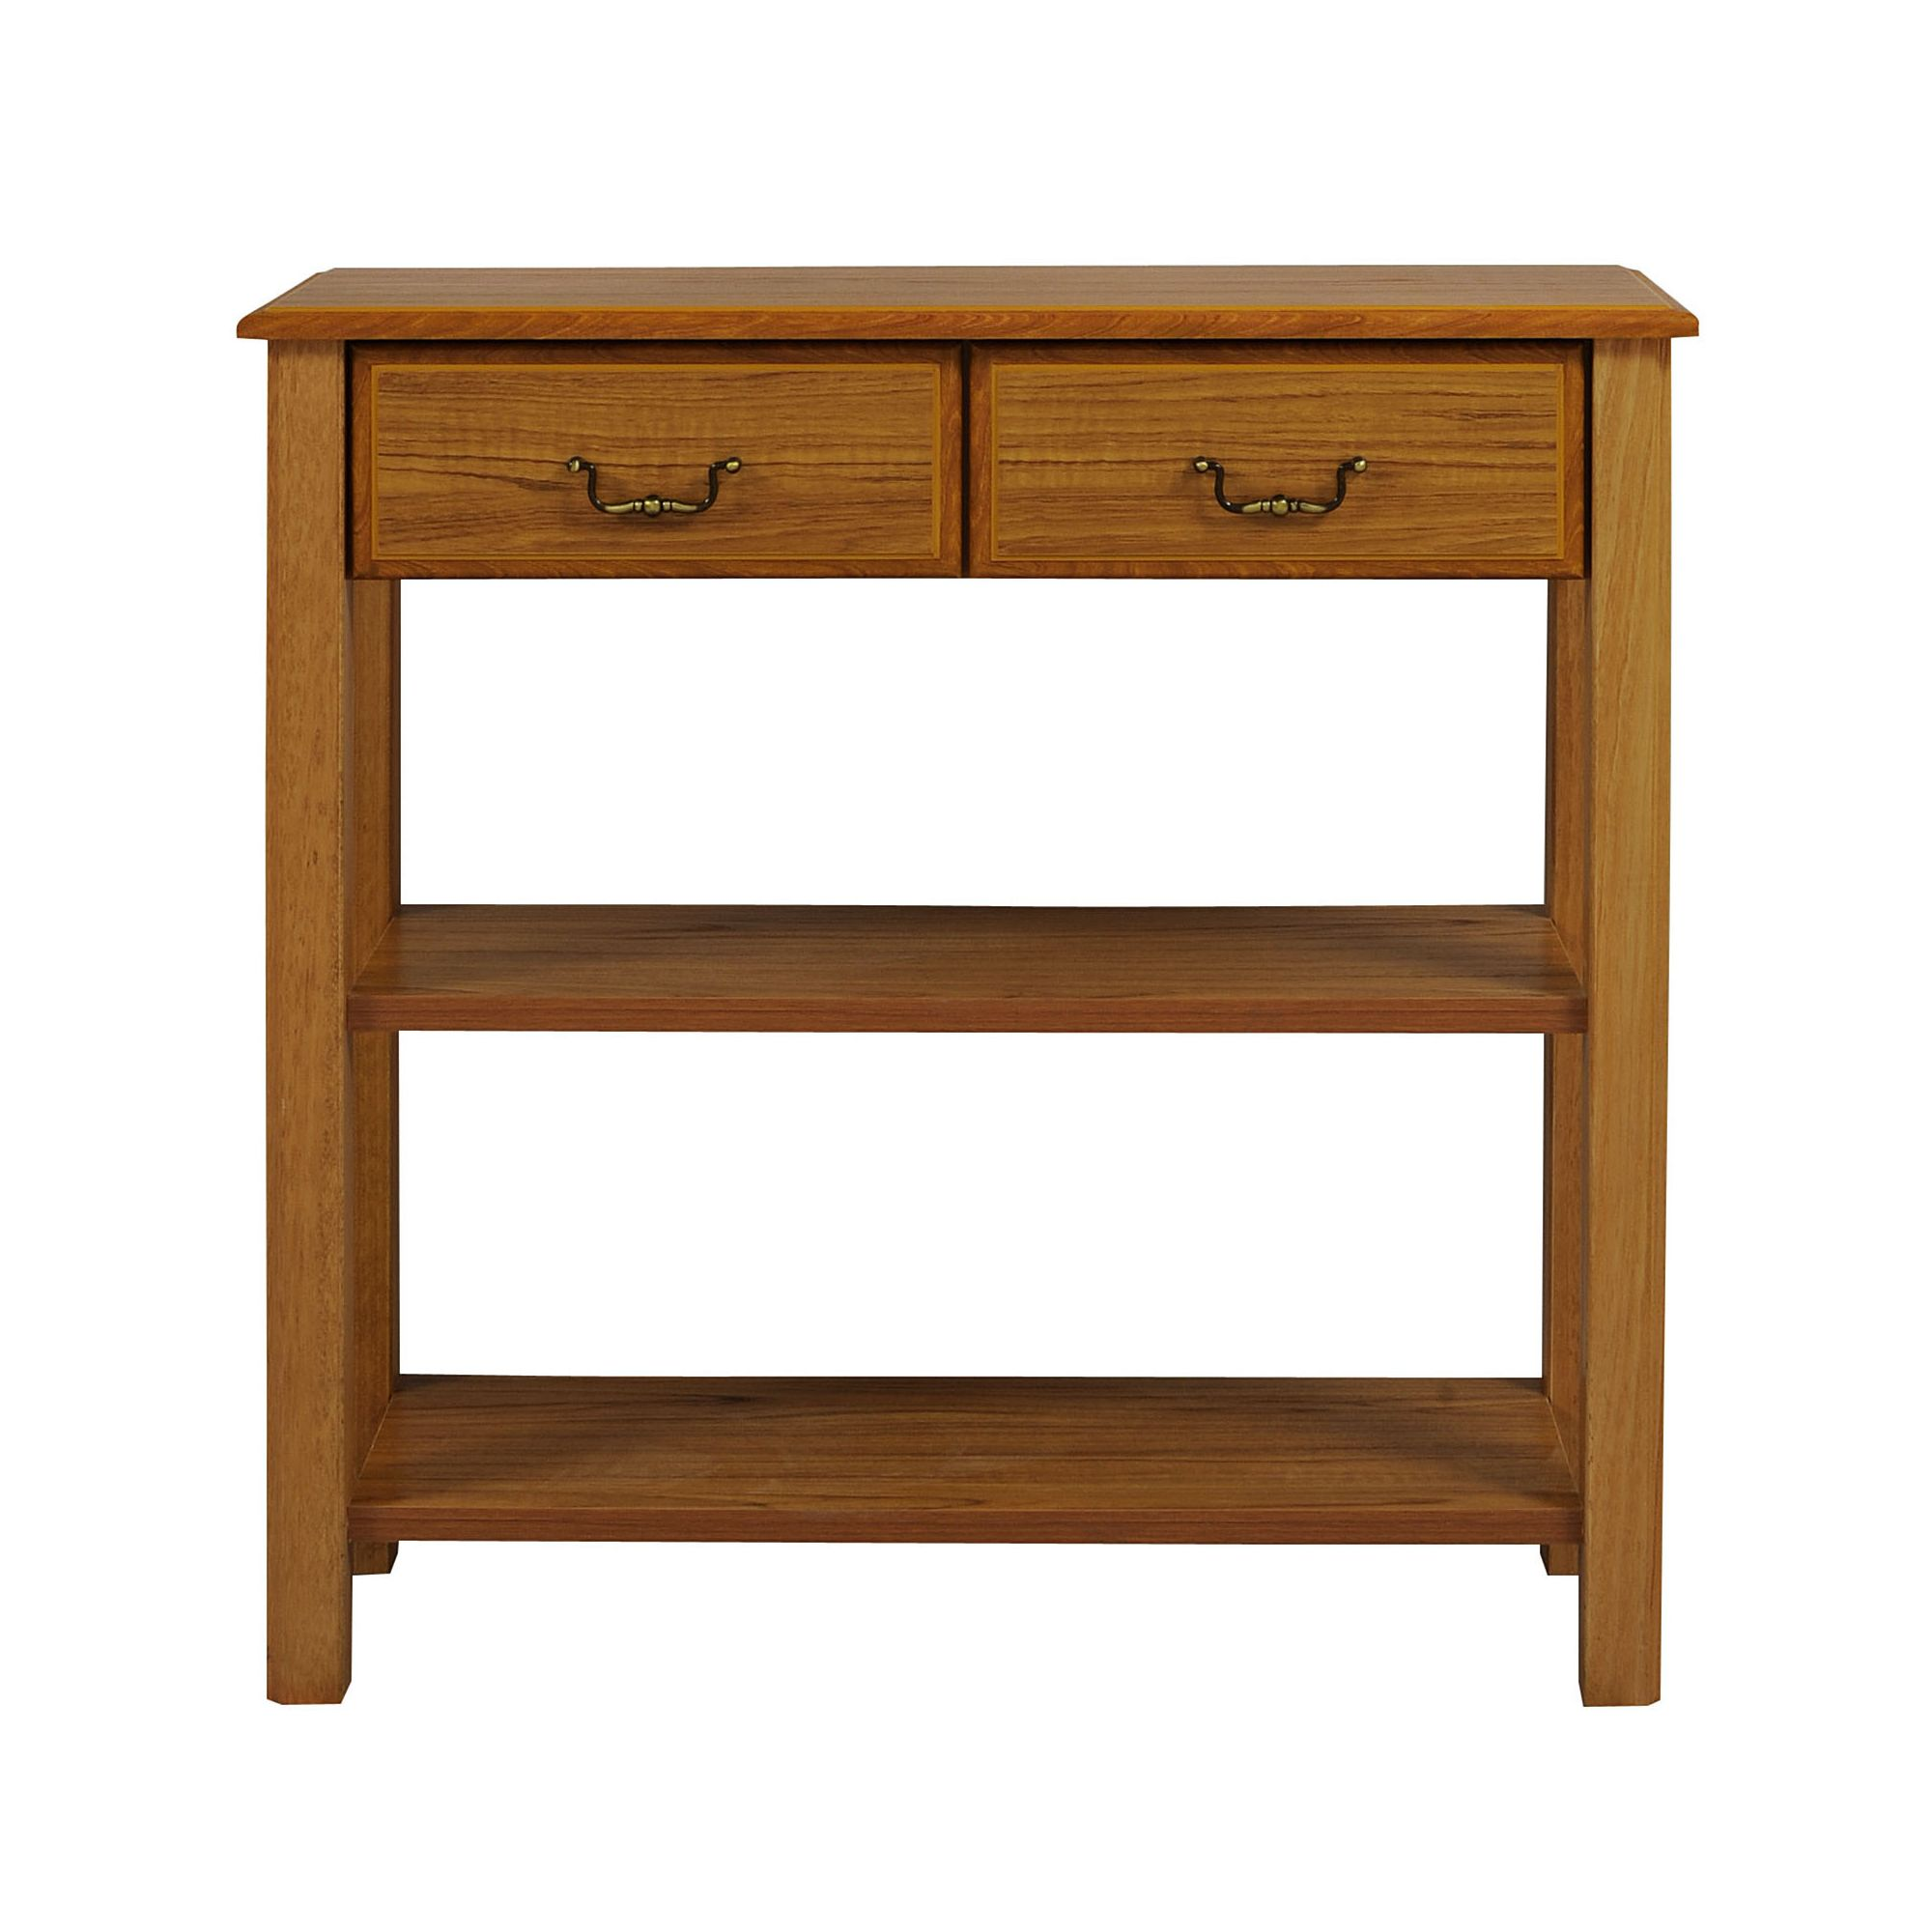 Other Caxton Tennyson Console Table in Teak